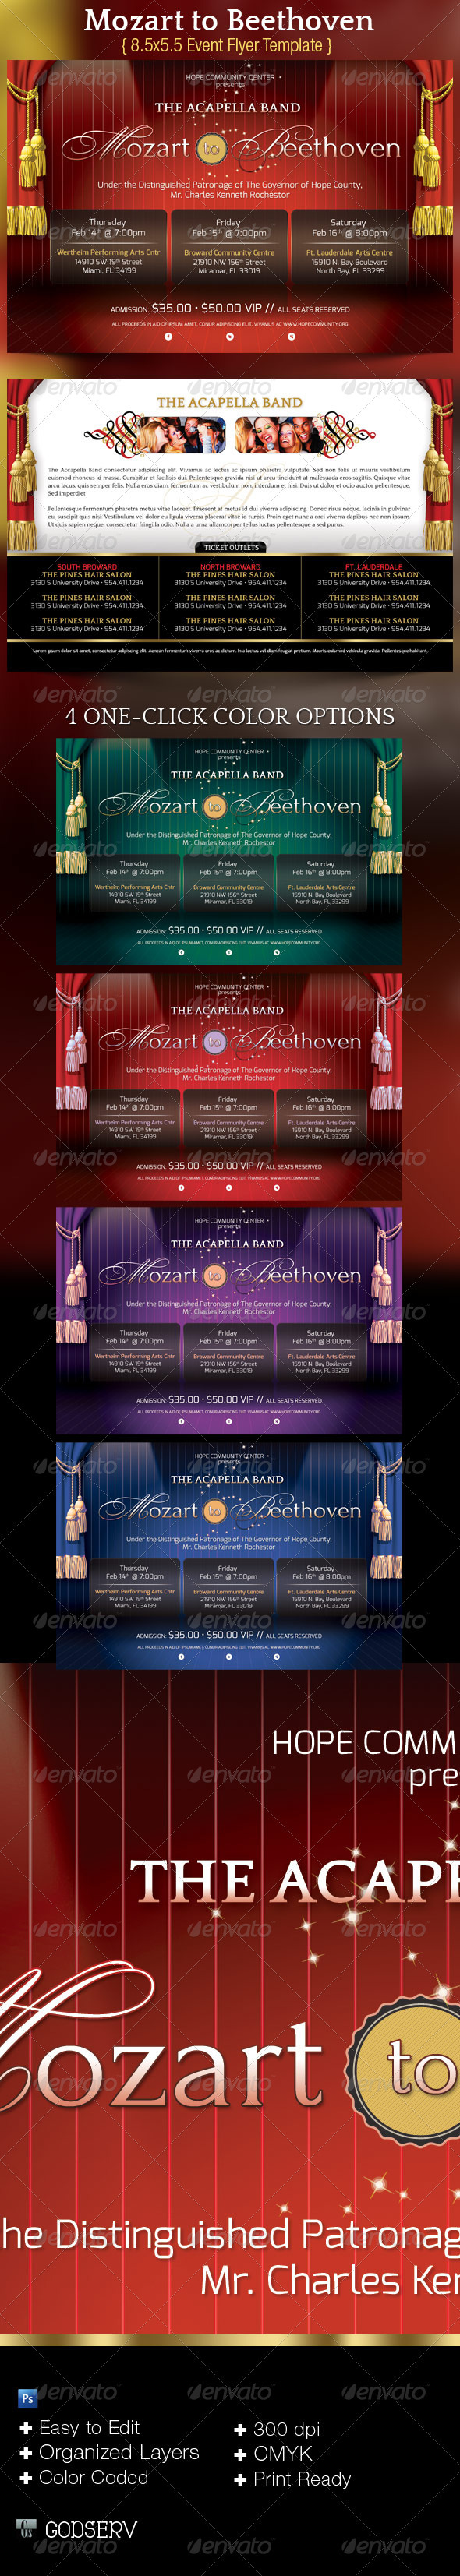 Mozart to Beethoven Concert Flyer Template - Concerts Events